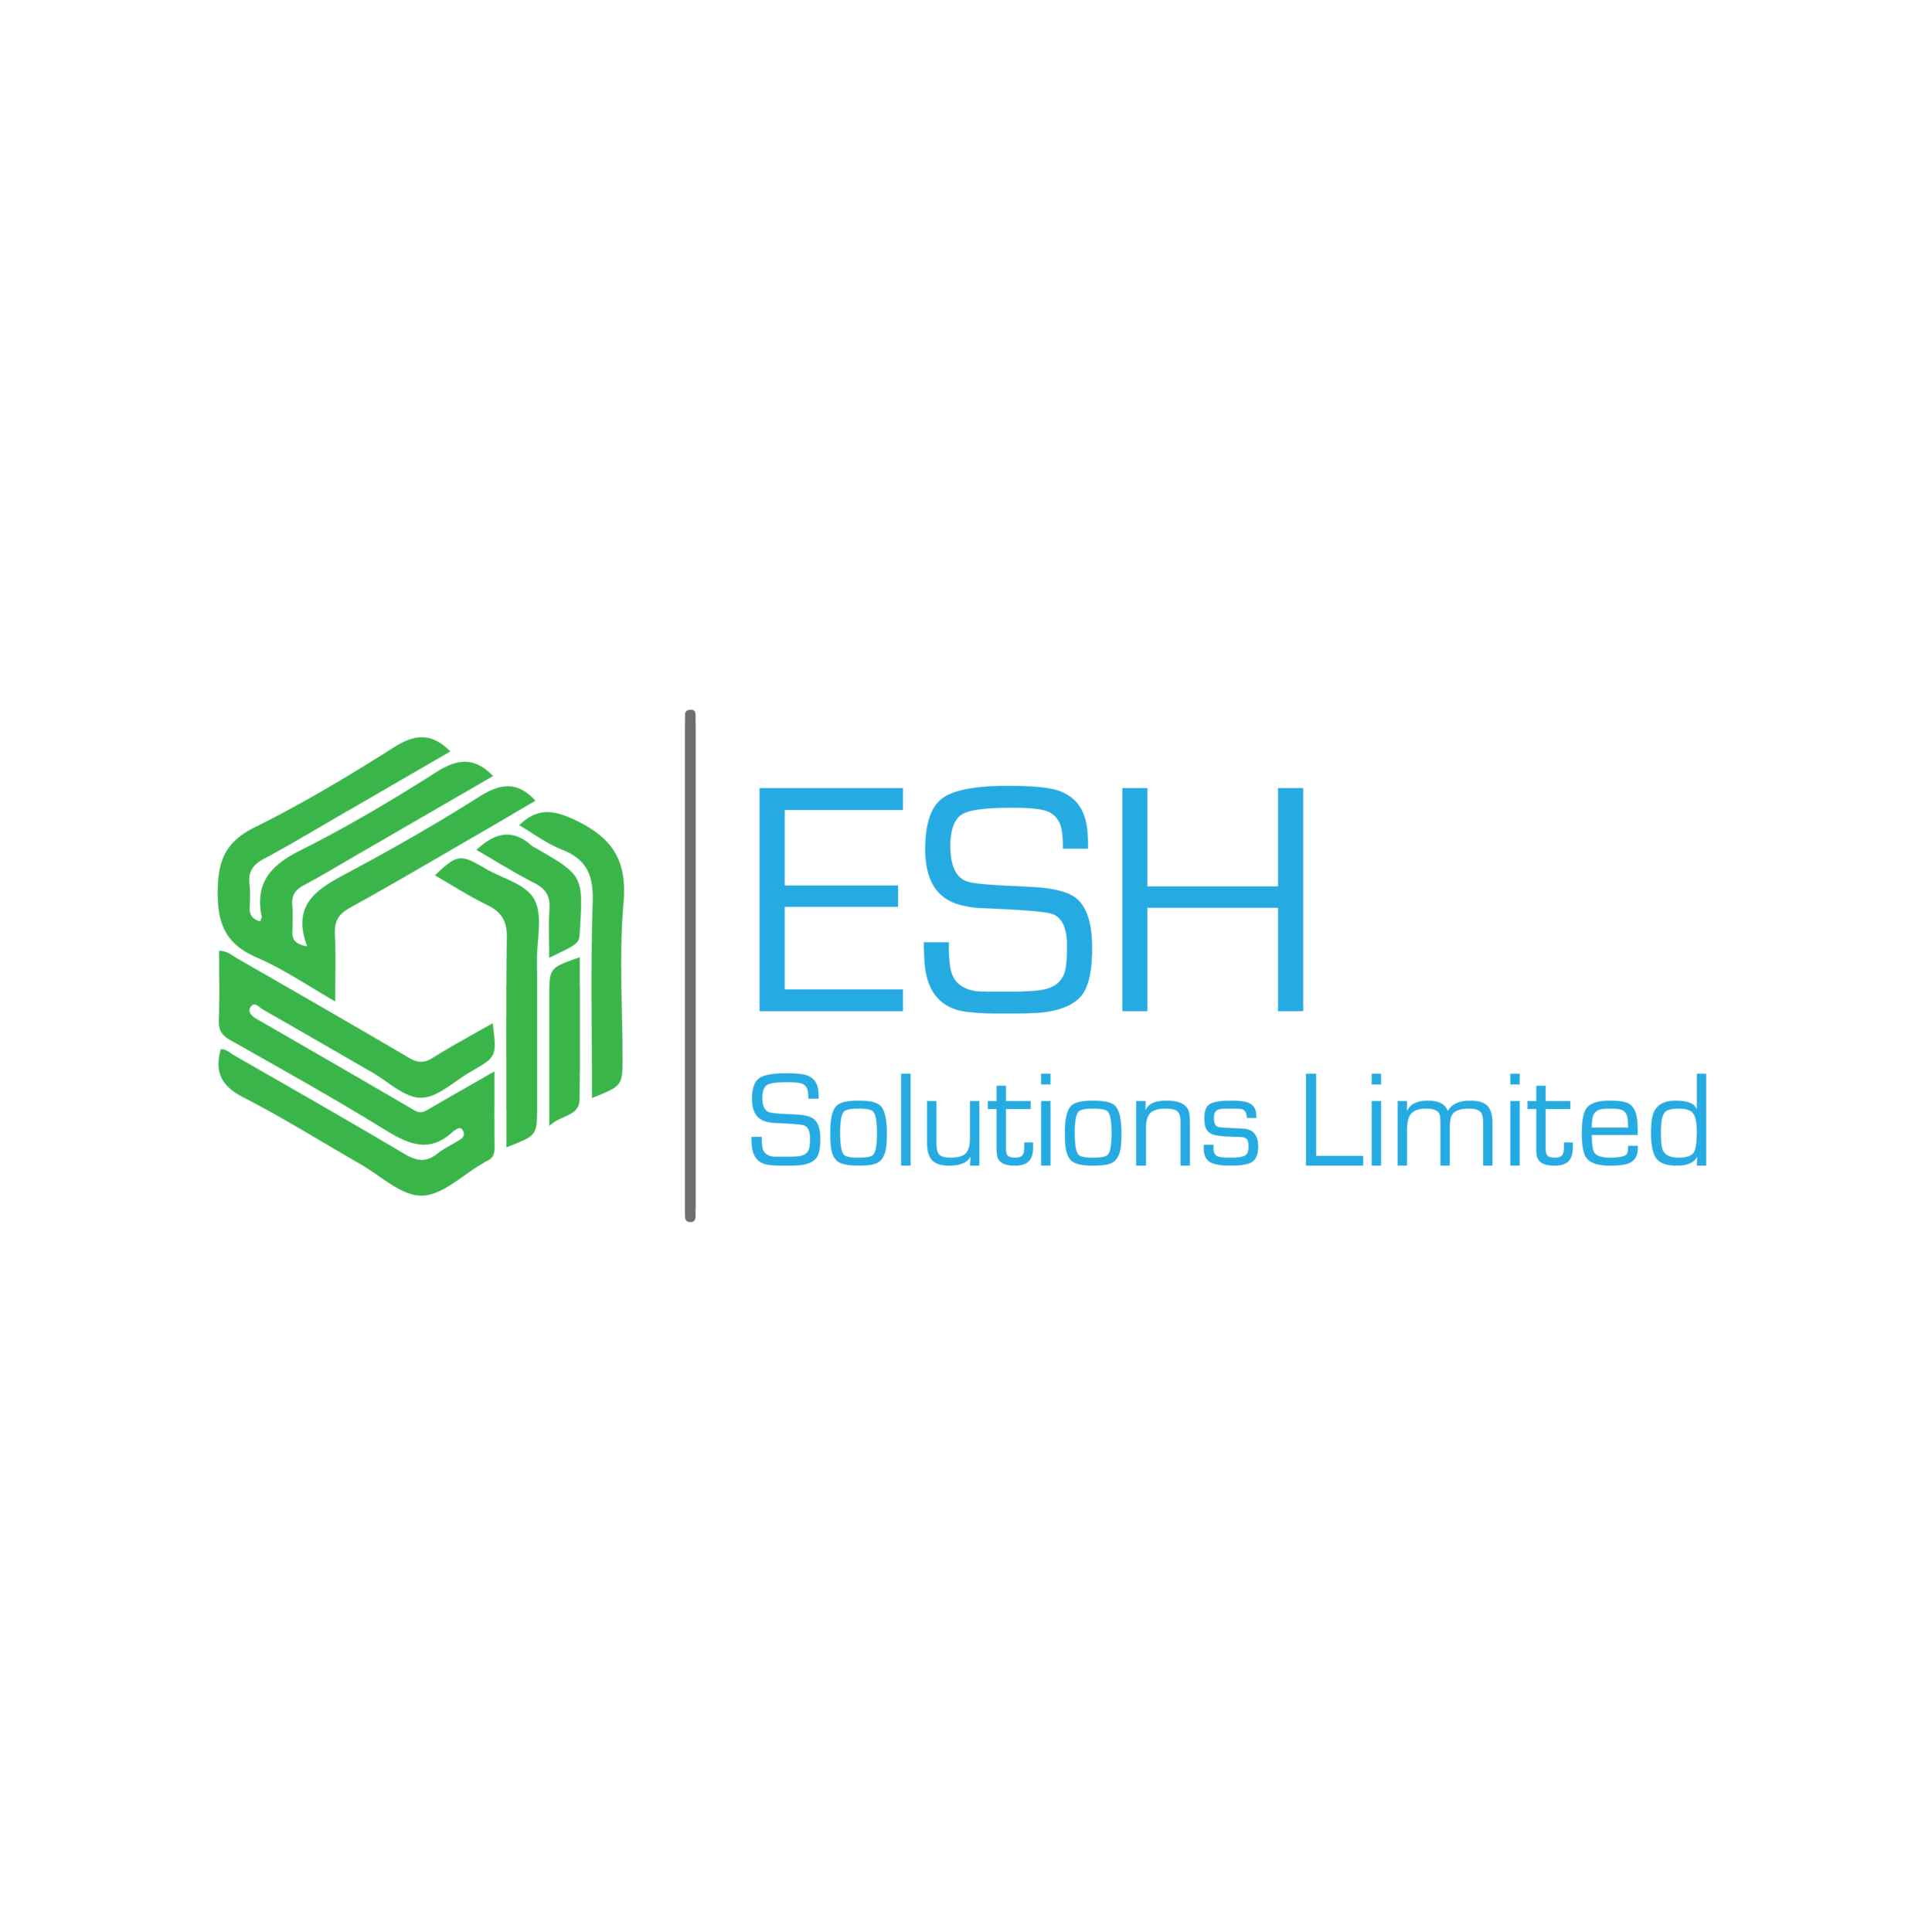 ESH Solutions Limited-01.png